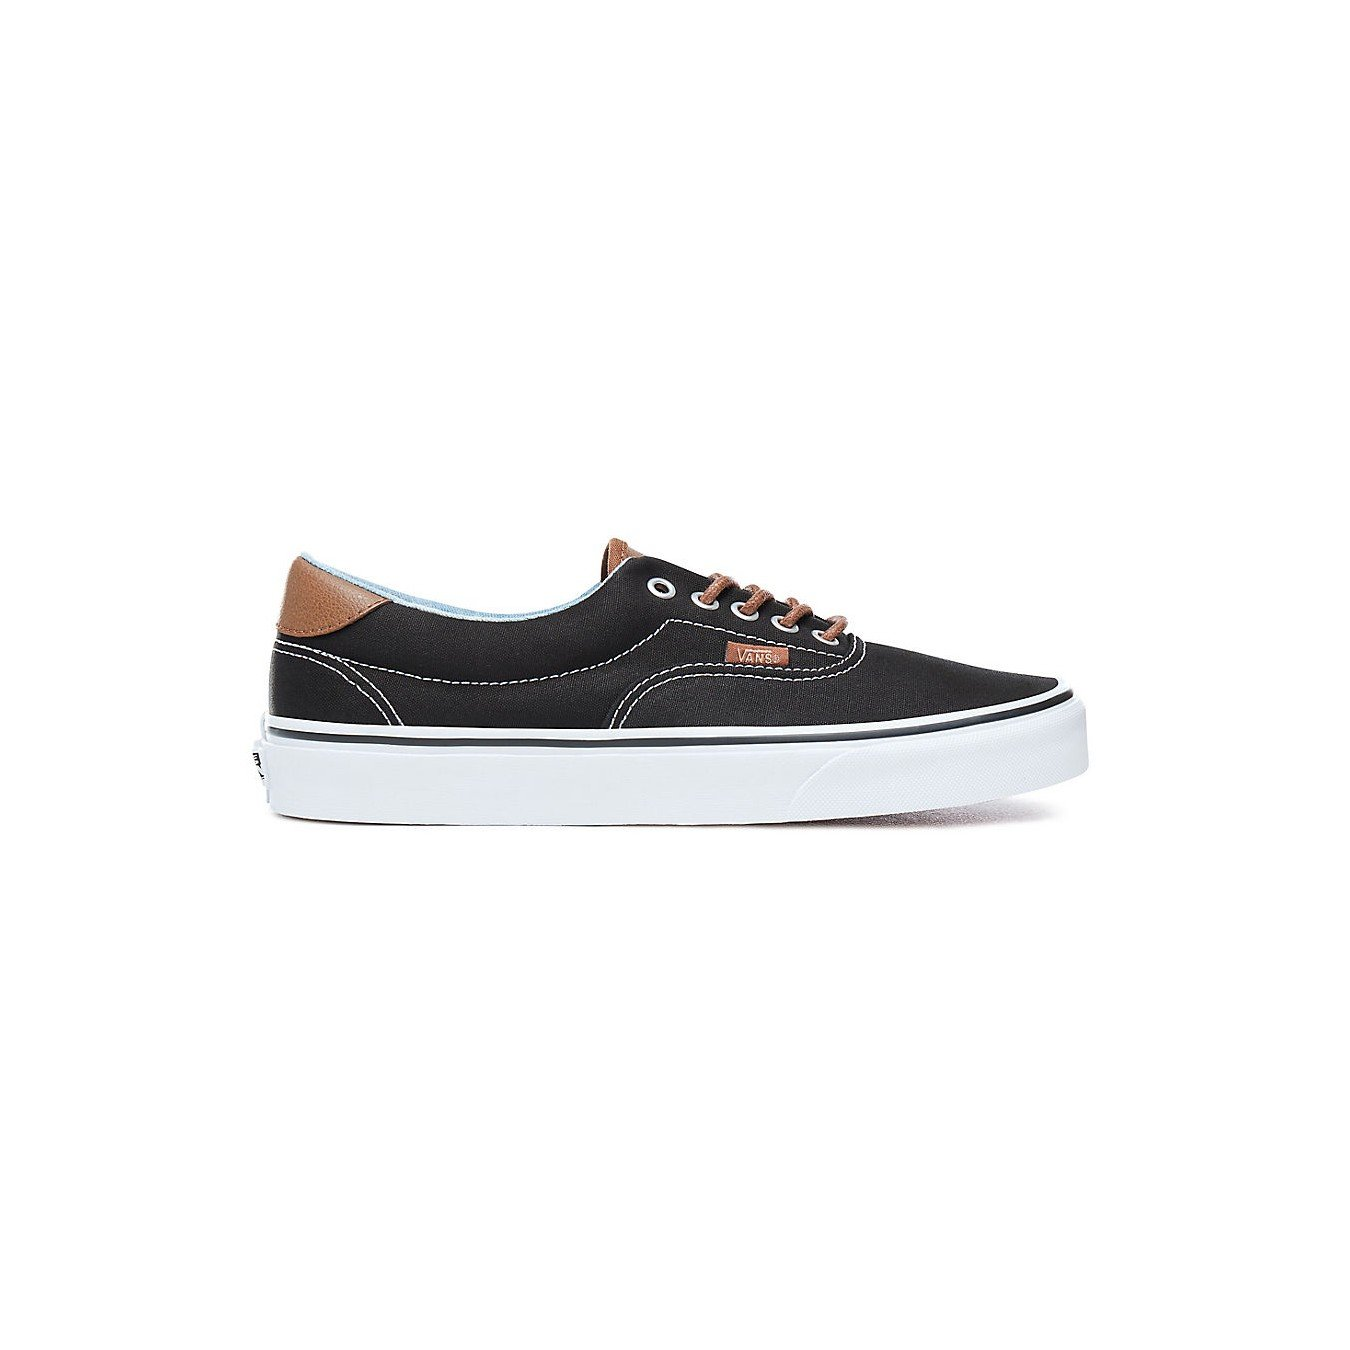 25acbd6d29 Galleon - Vans Mens Era 59 (C L) Black Acid Denim Skateboarding Sneakers  4000591621 (10.5 Women   9 Men M US